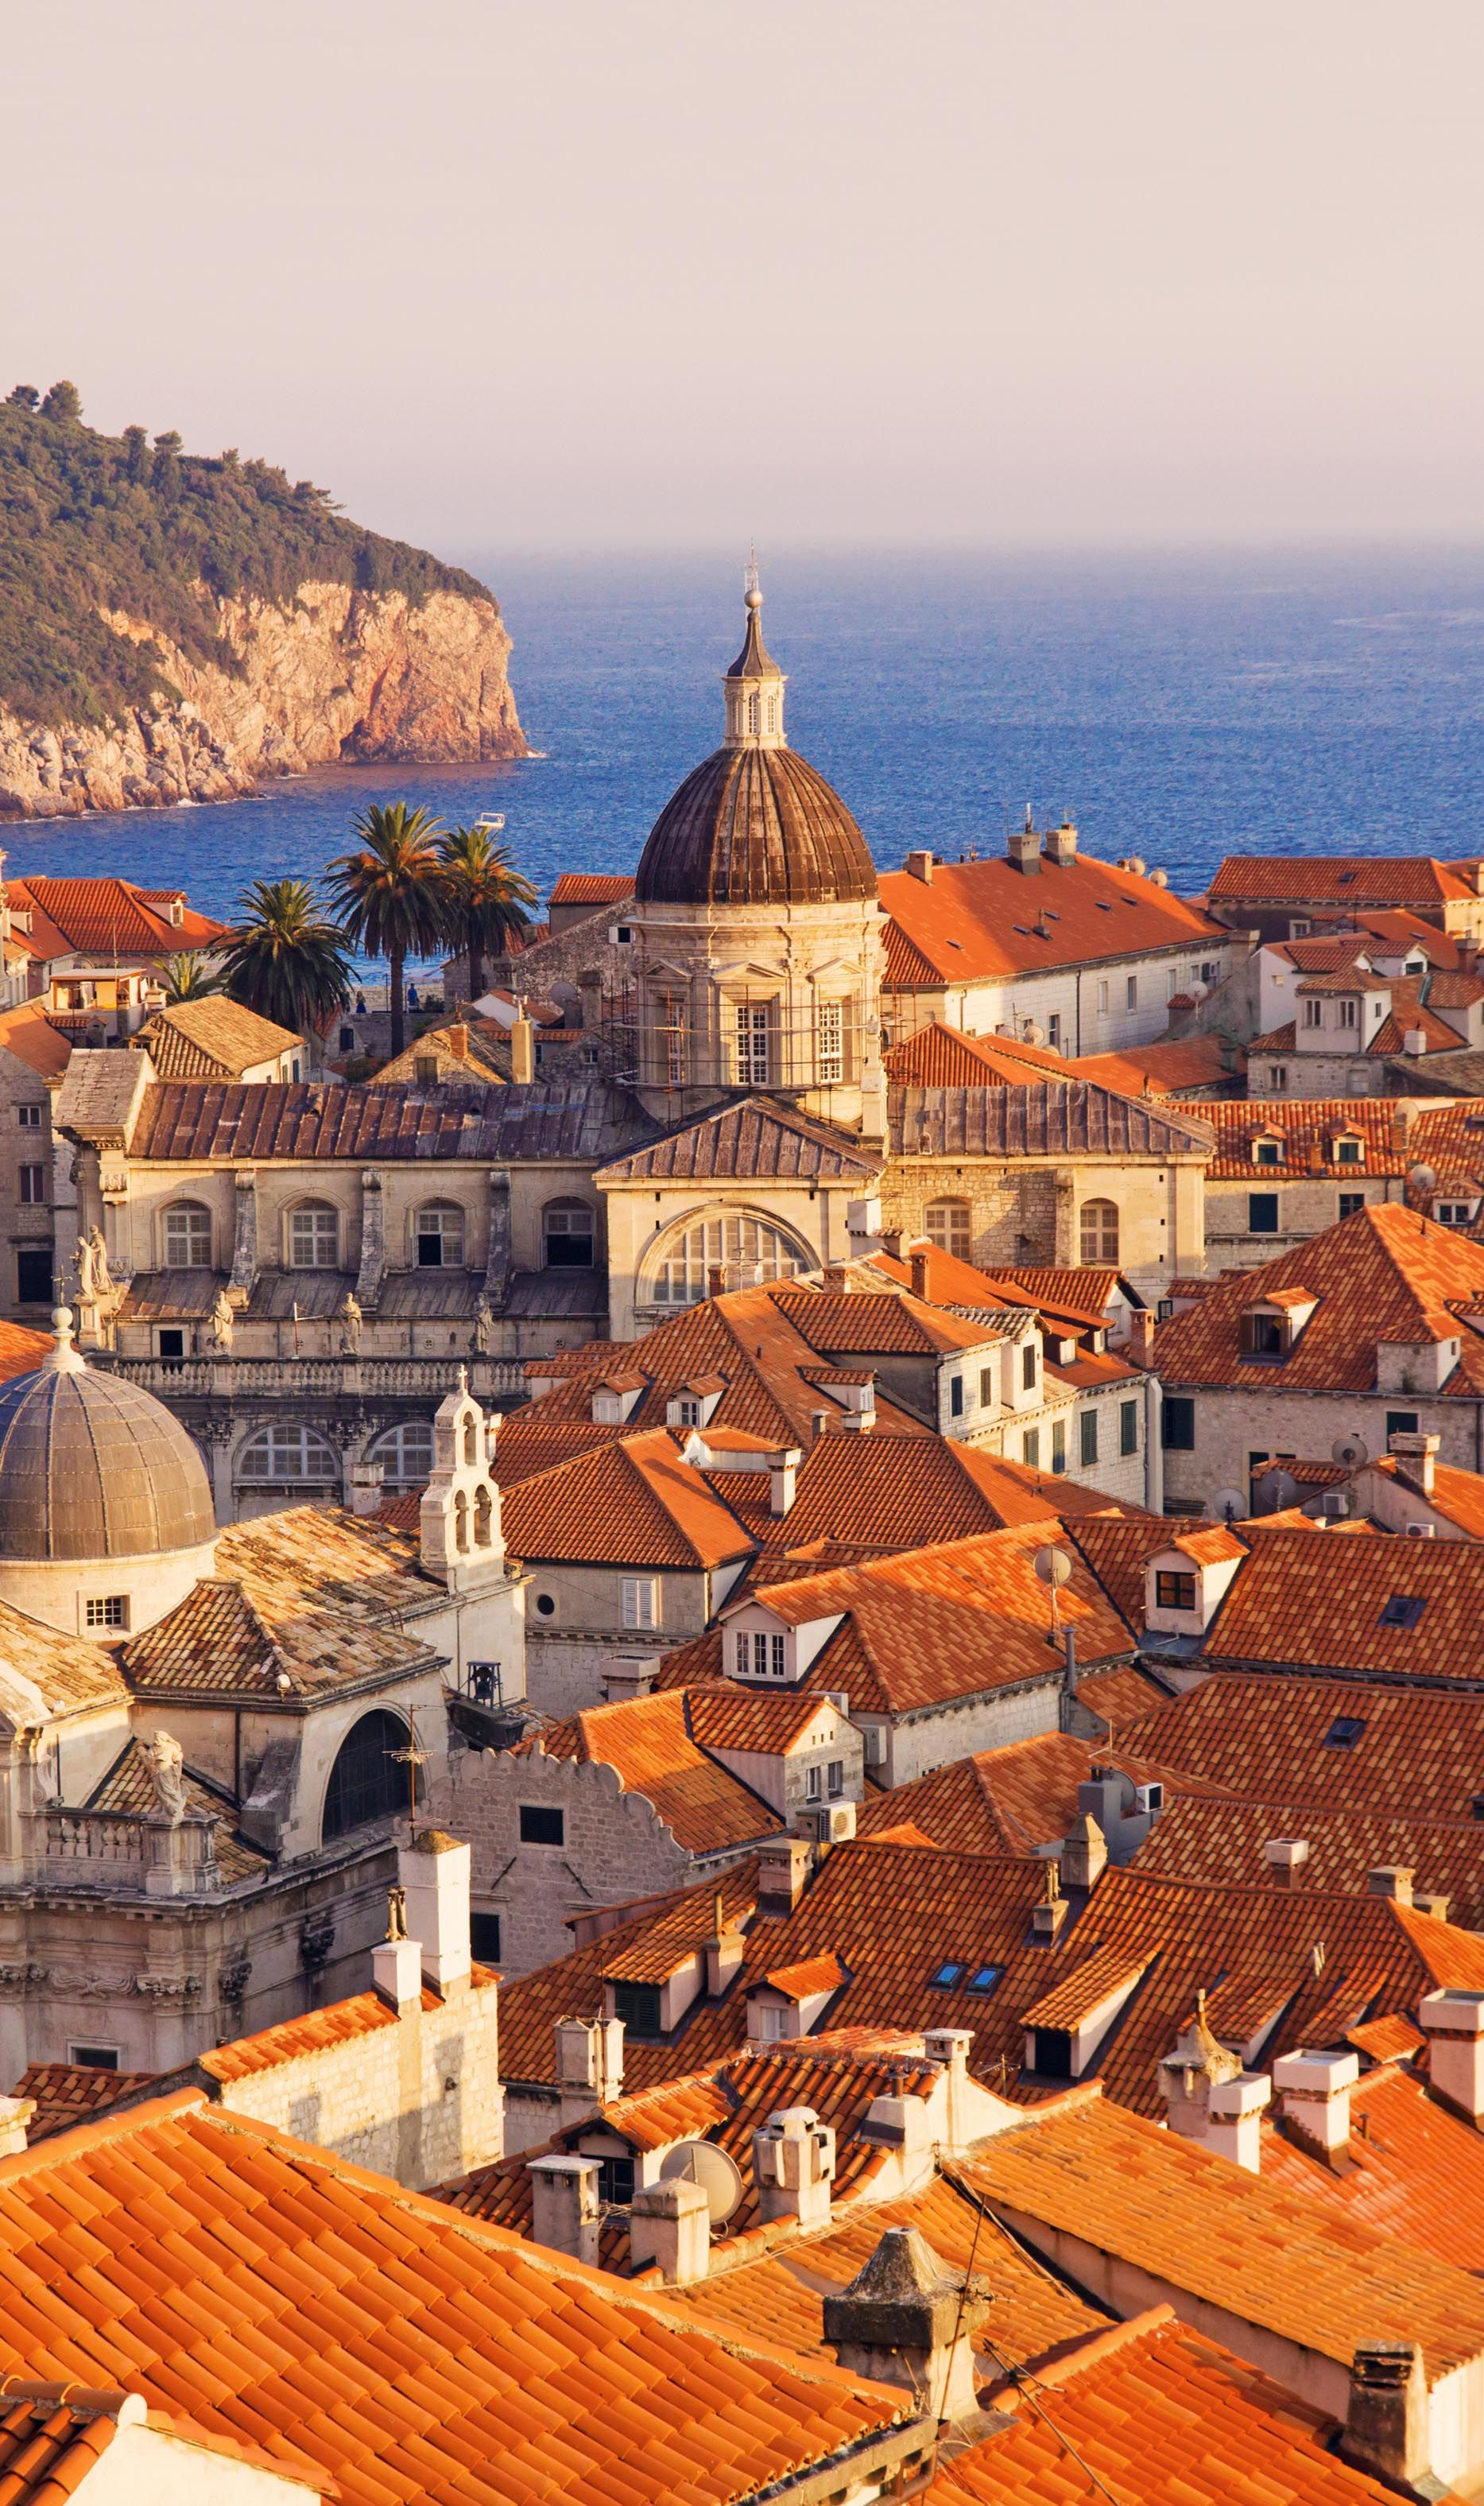 Discover dubrovnik old town guided walking tour - Croatia Favourites Travel To Dubrovnik Old Town And Experience The Beautiful Scenery At Sunset